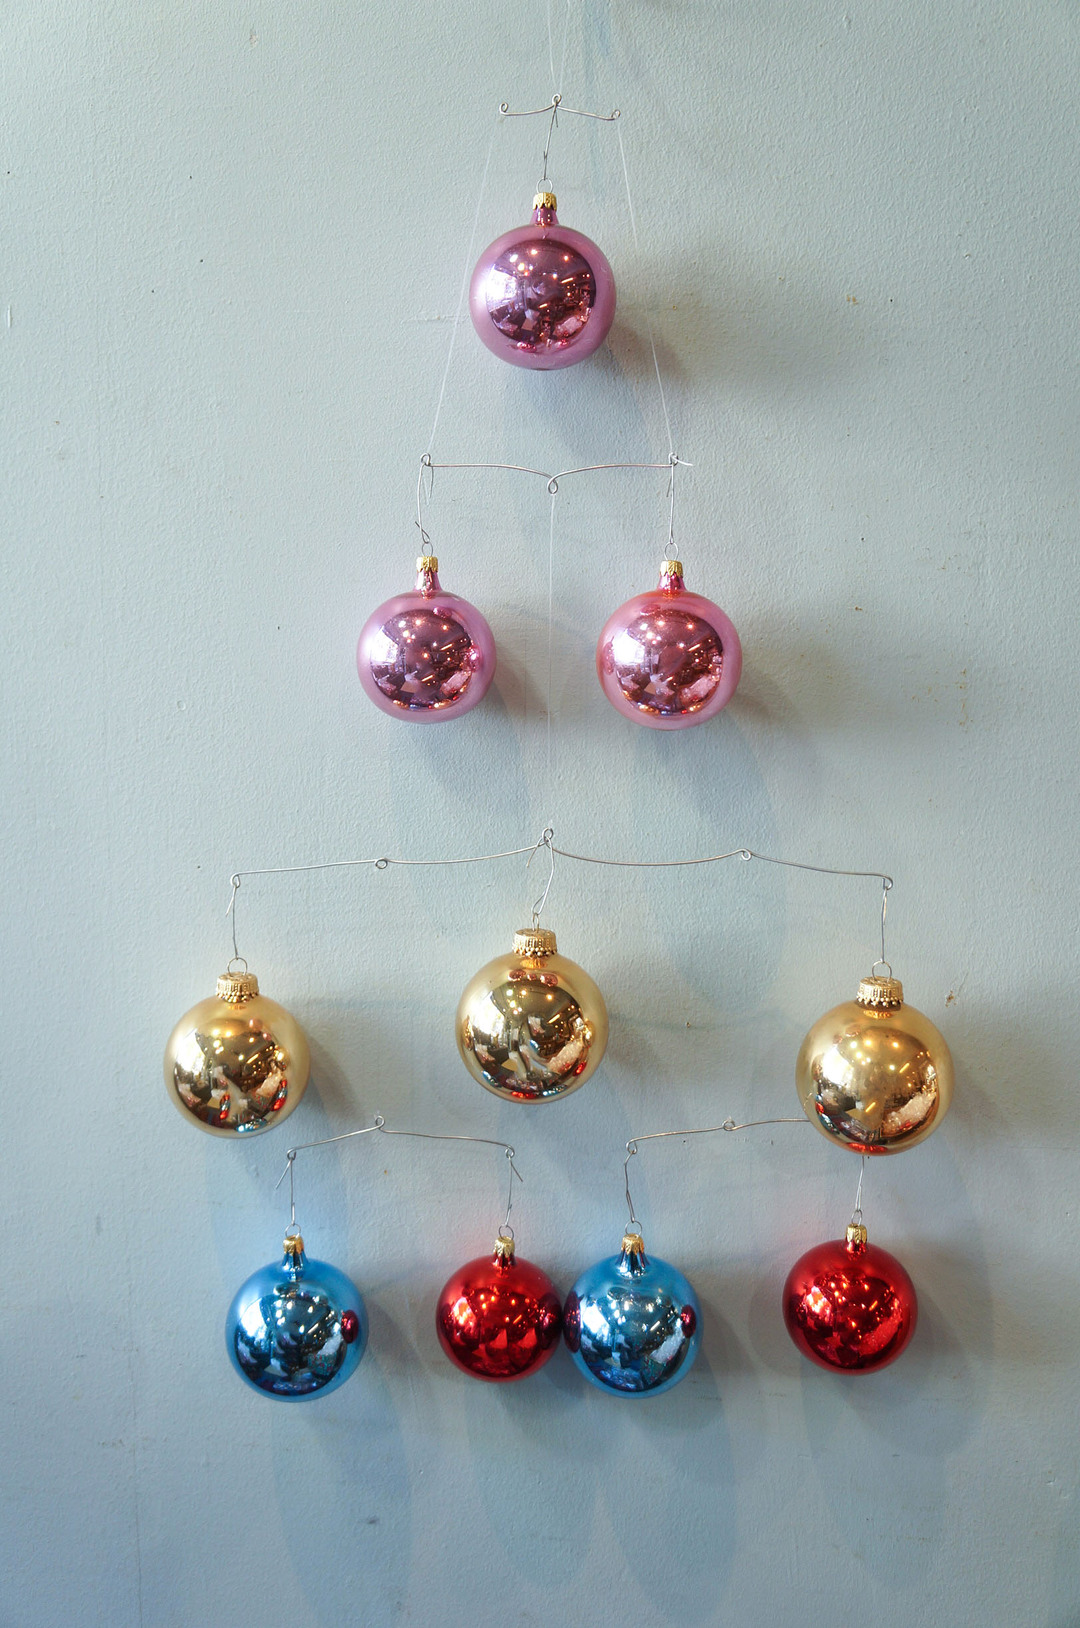 Vintage Blown Glass Christmas Ball Ornament/ヴィンテージ クリスマス オーナメント 吹きガラス ボール レトロ 10個セット 1